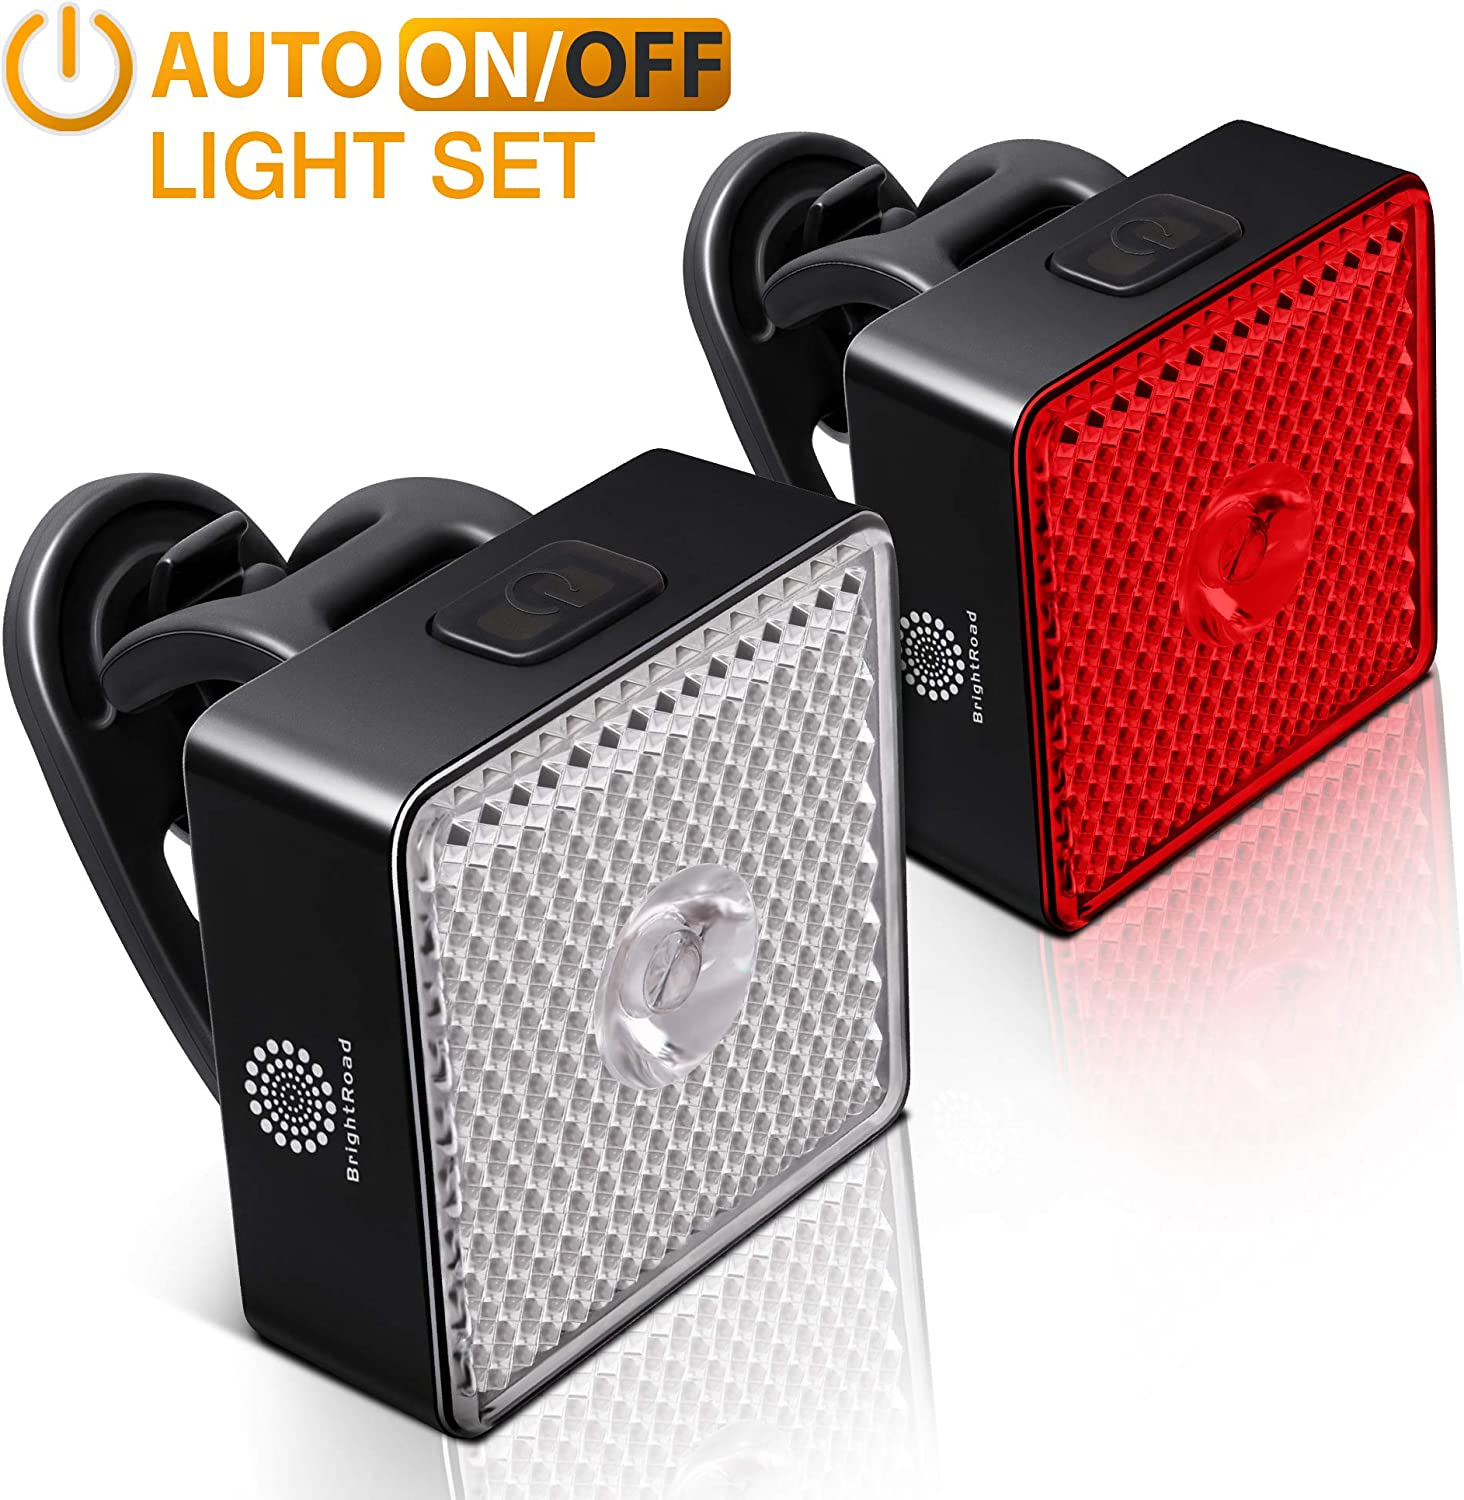 BrightRoad Rechargeable Front 800 /& Back 40 Lumens Bicycle Light set Auto ON OFF